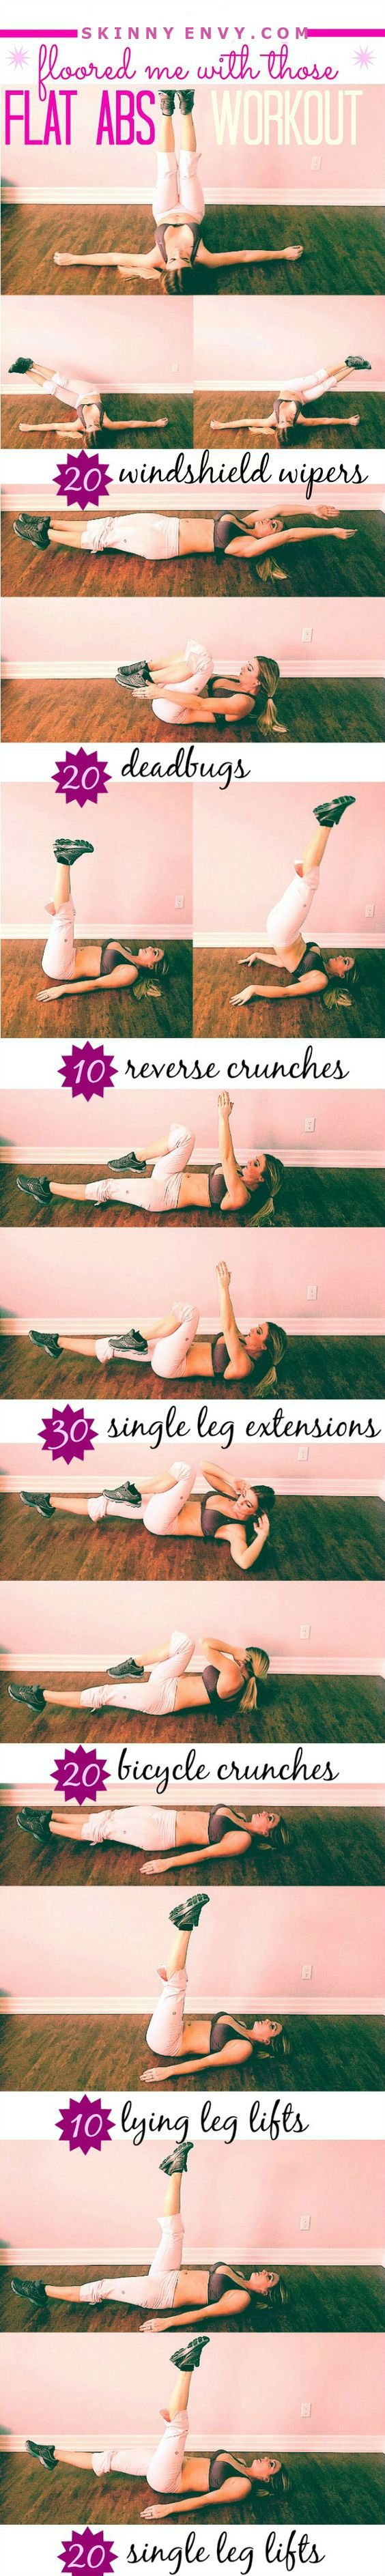 Belly Fat Burner Workout For Women Flatten your abs and blast calories with these new floor moves! A belly fat burner workout to tone up your tummy, strengthen your core and get rid of love handles. Keep to this routine and get the flat, firm belly you always wanted! VISIT skinnyenvy.com